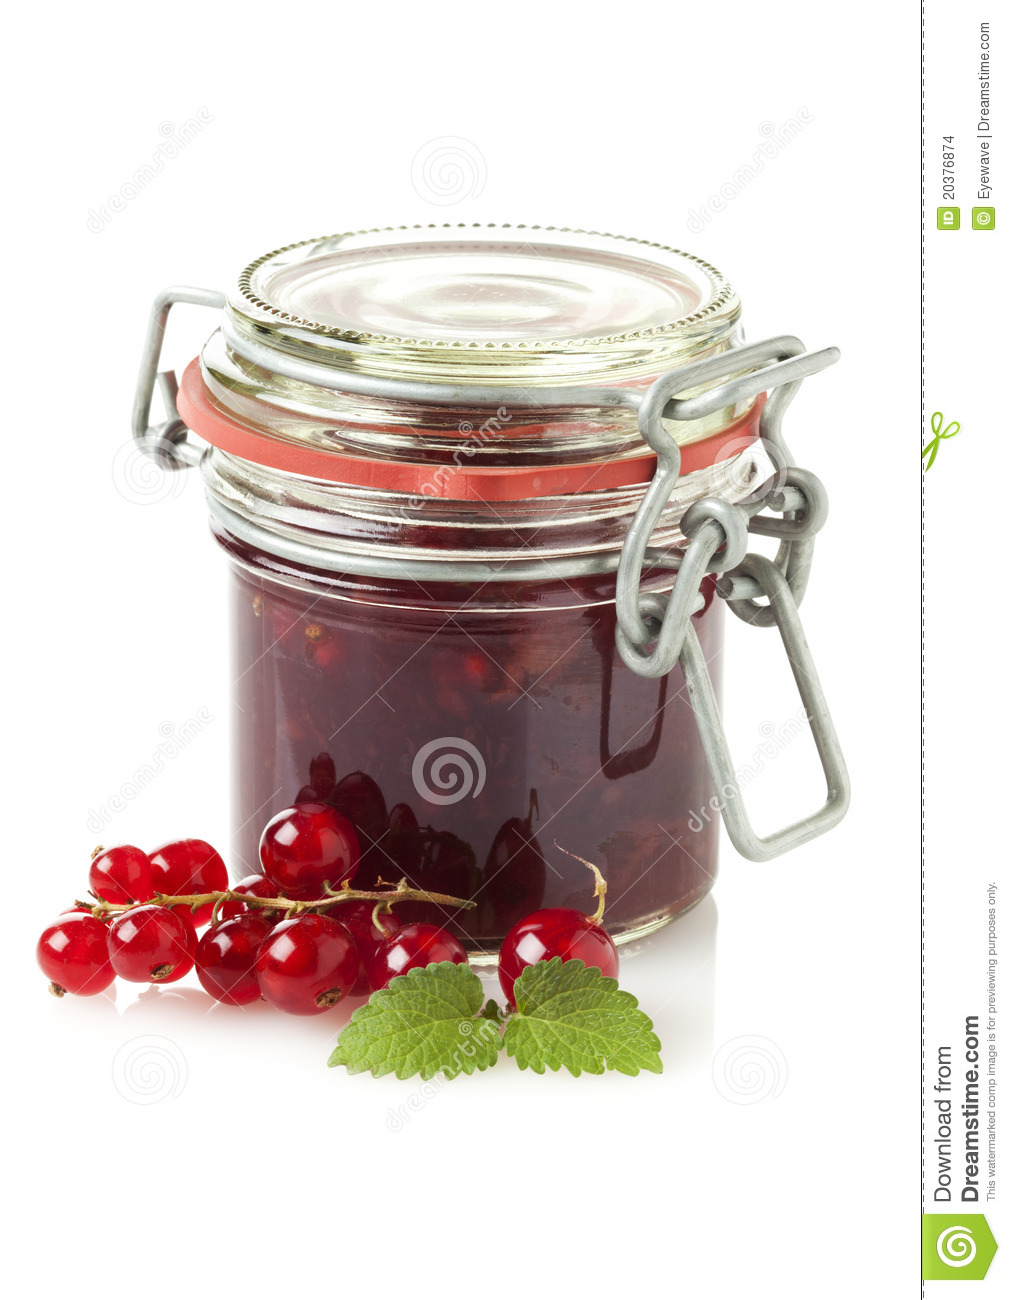 Red Currant Jam Stock Images - Image: 20376874